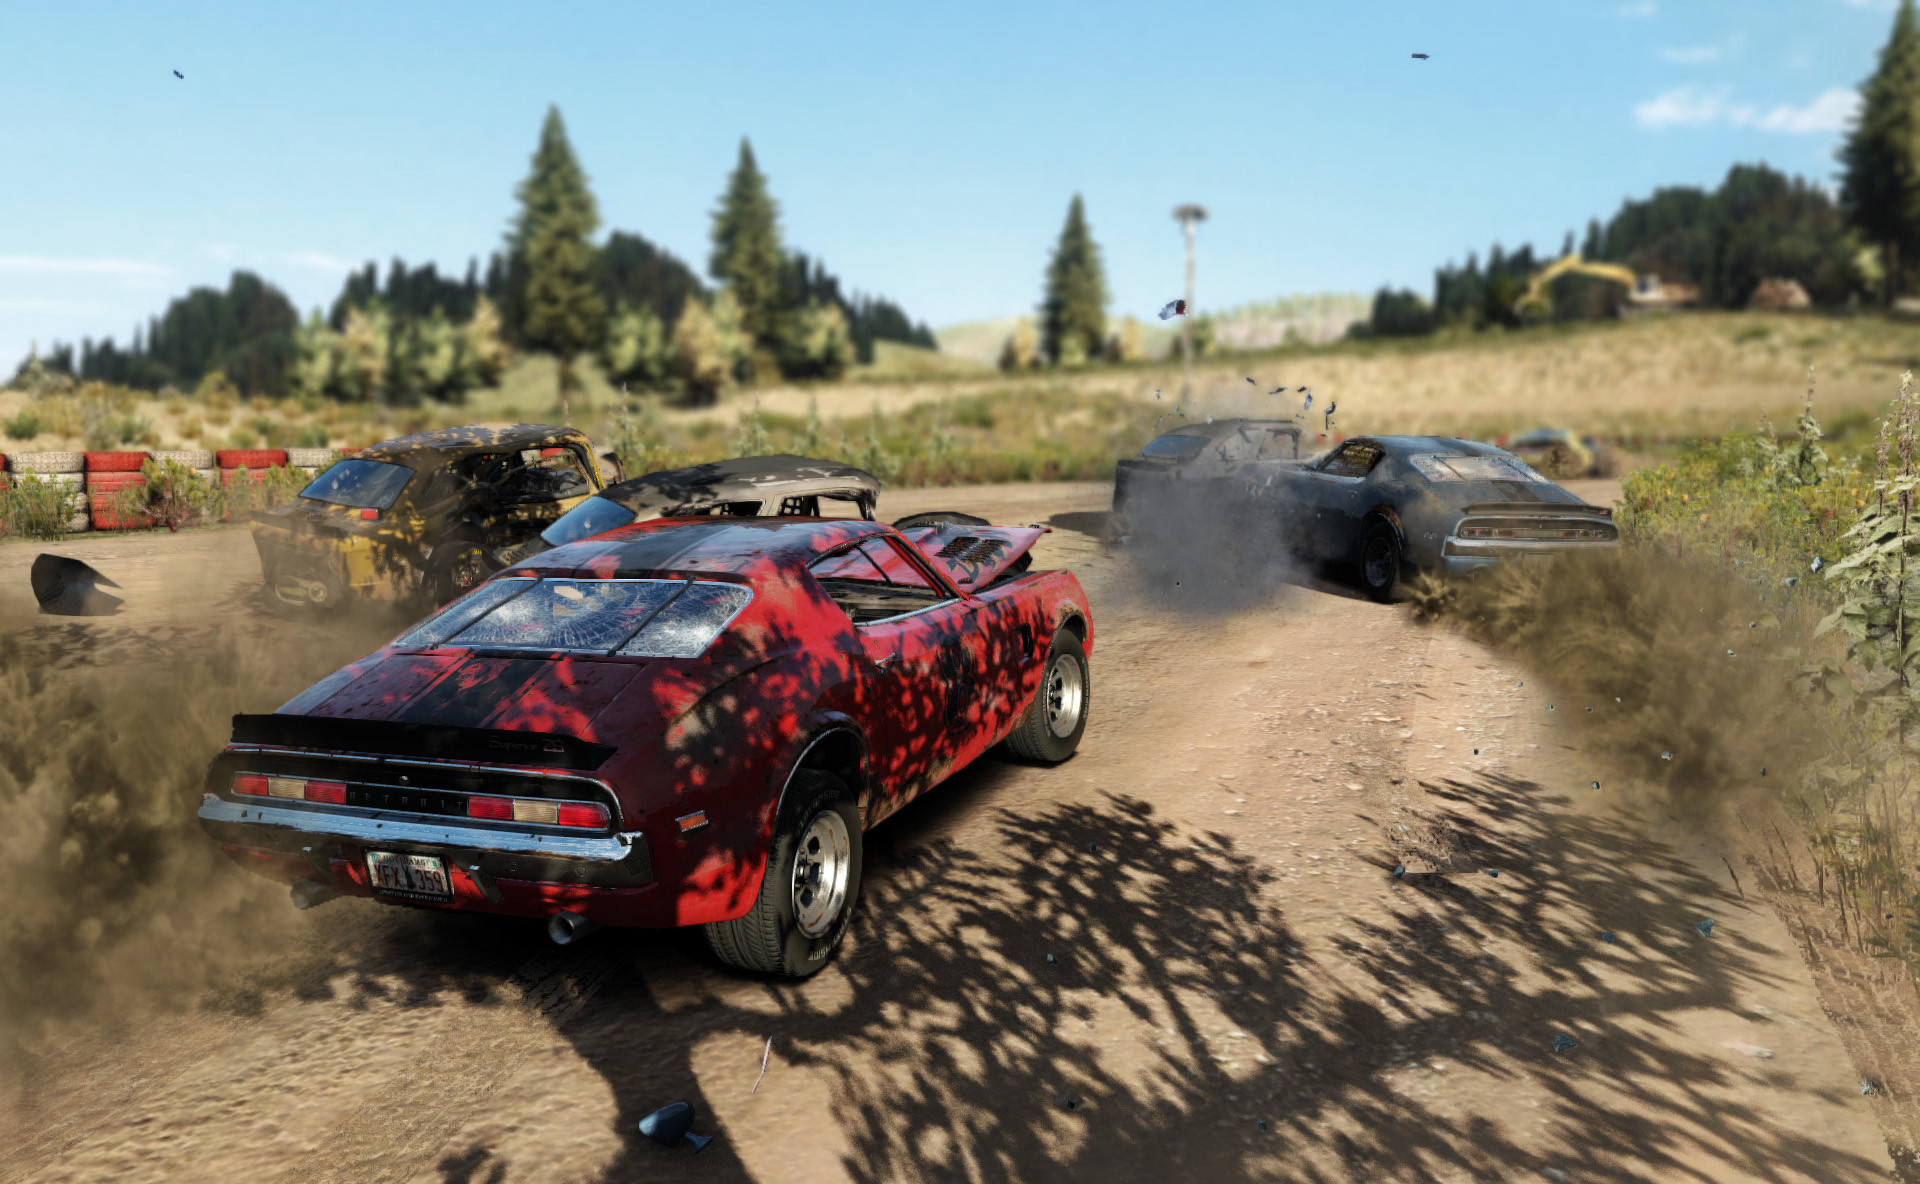 Car wreck on the road in Wreckfest